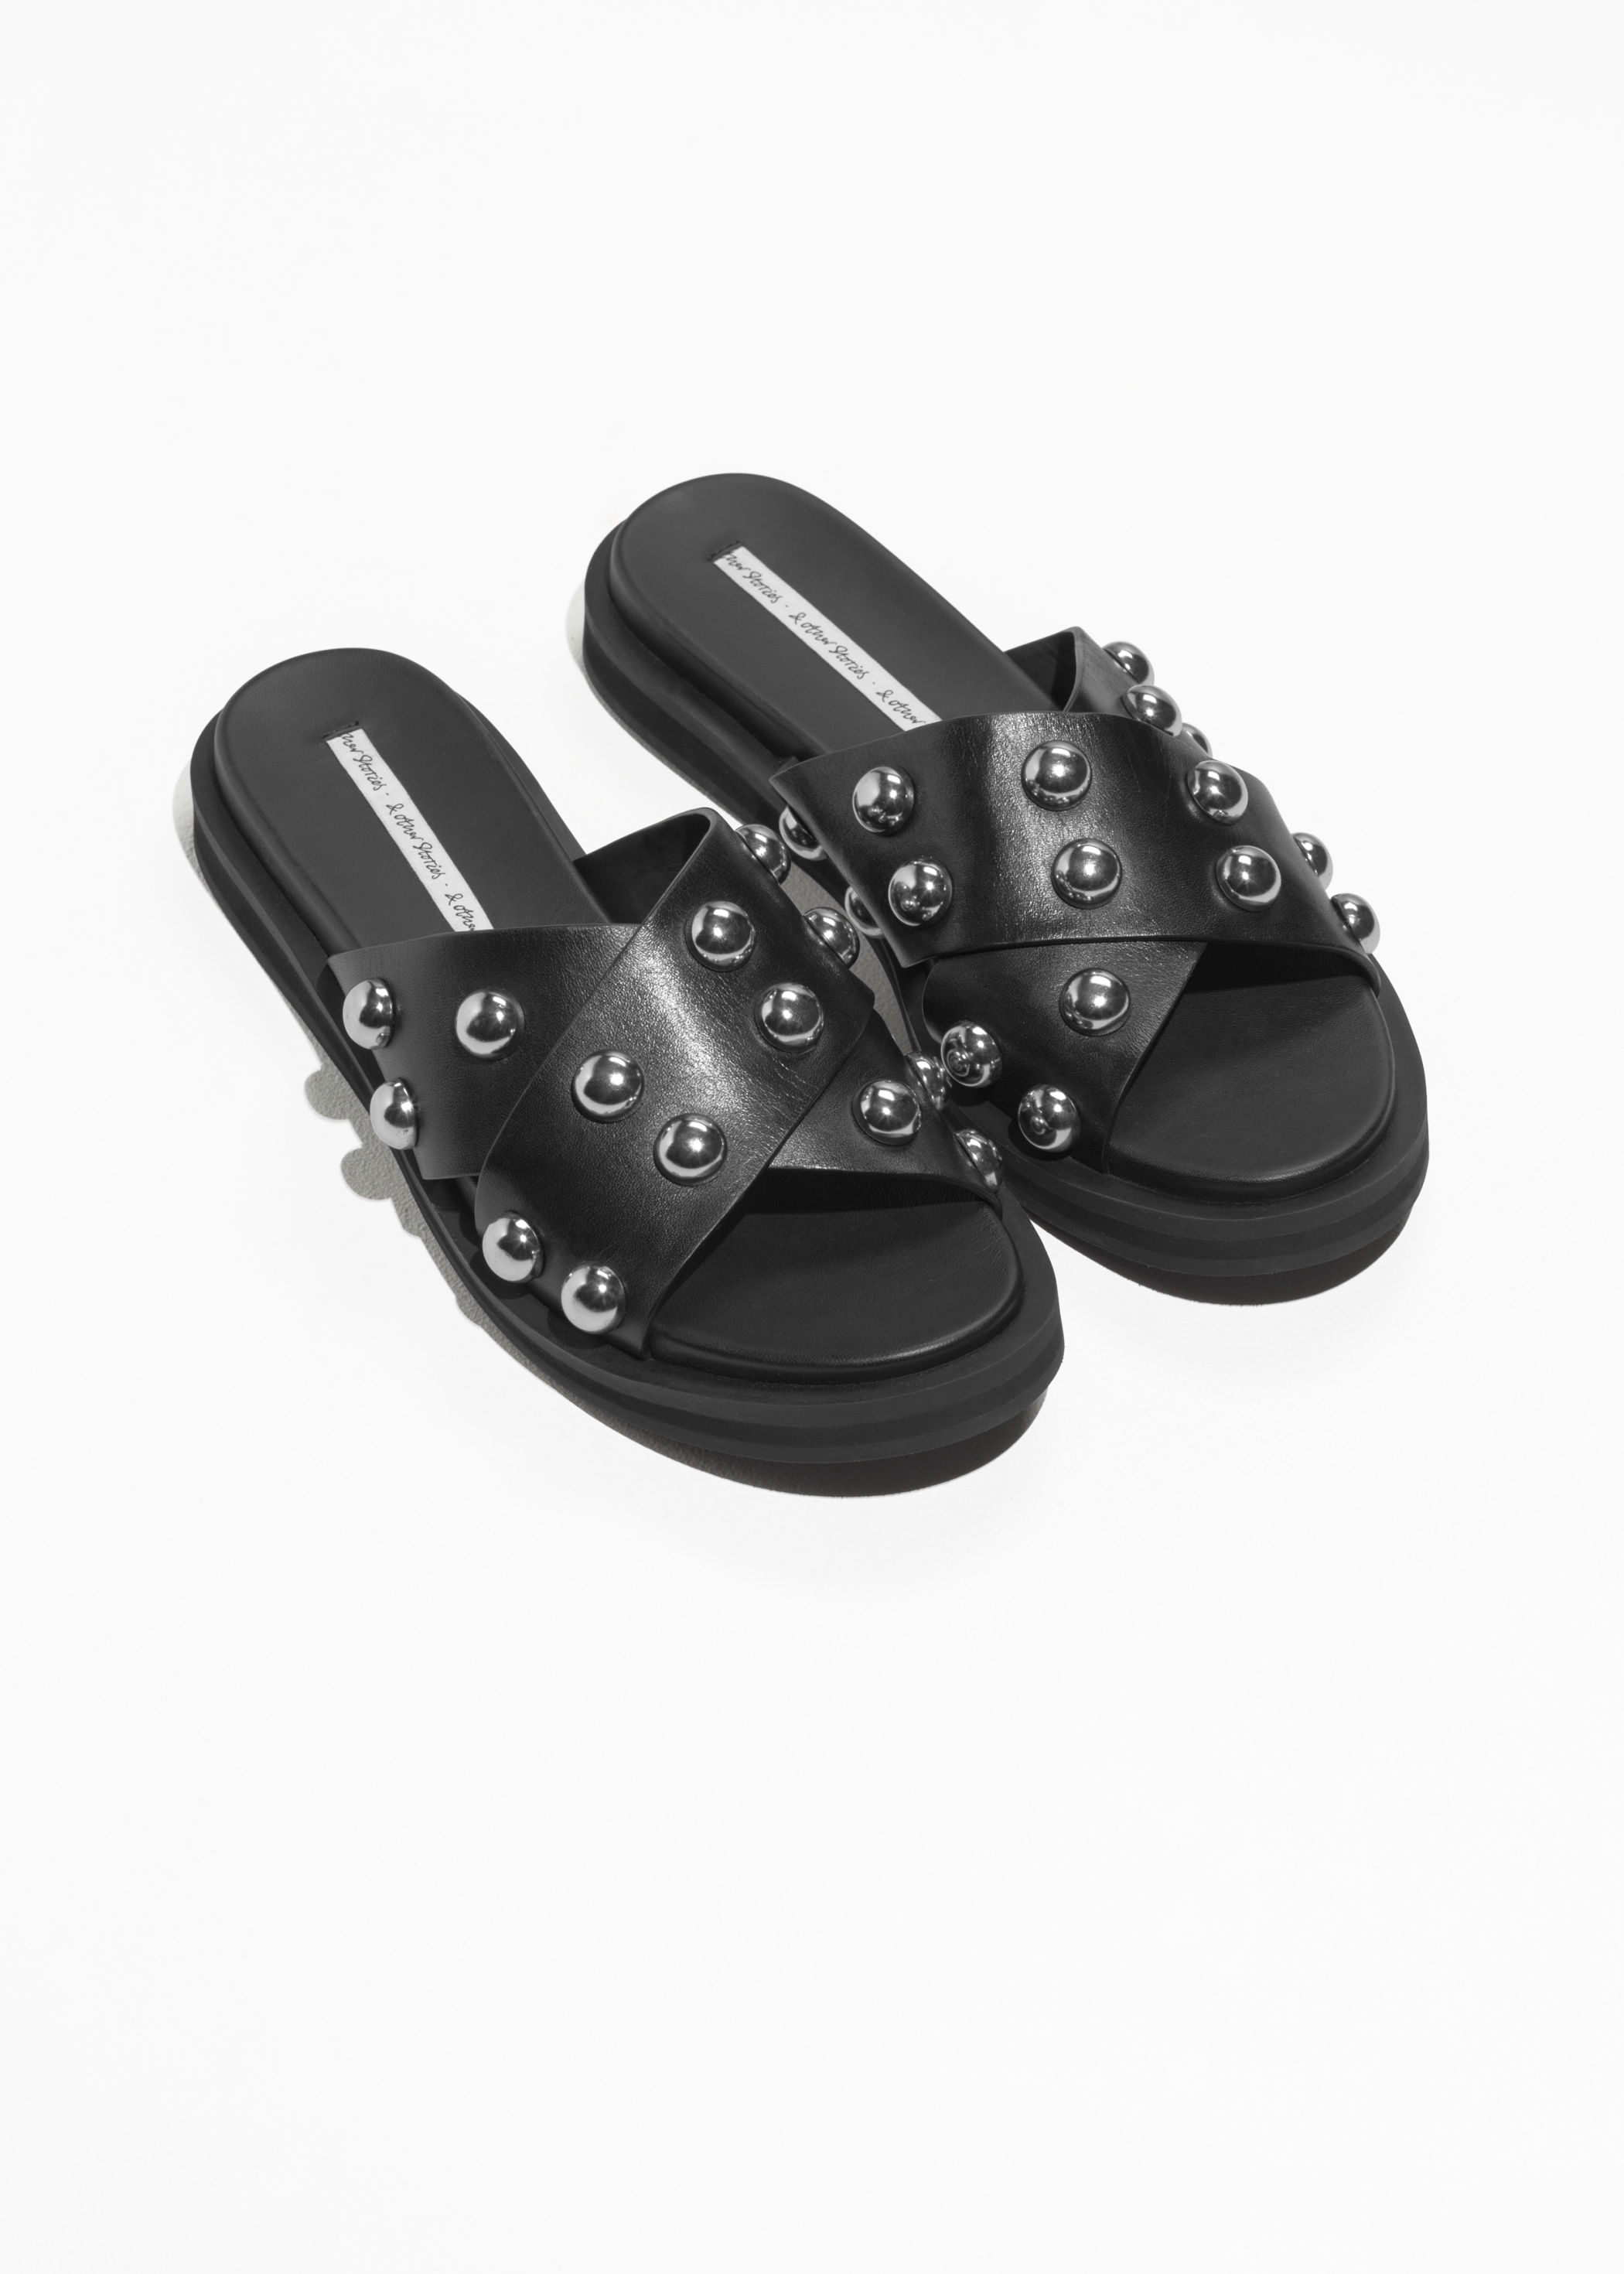 & Other Stories / Studded Criss Cross Slips -